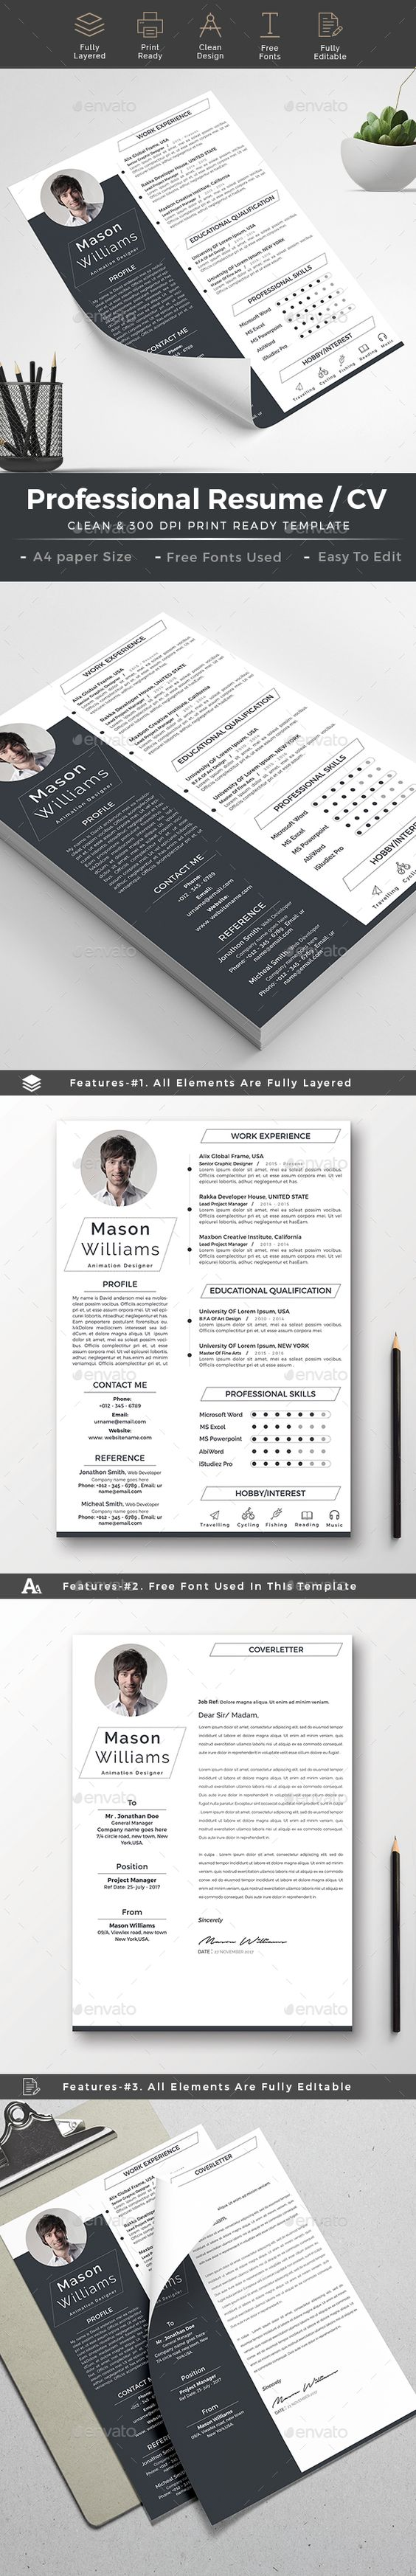 resume sample phd%0A Resume Template  u     FREE Cover Letter  creativework      Resume Templates    Pinterest   Free cover letter  Resume template free and Template